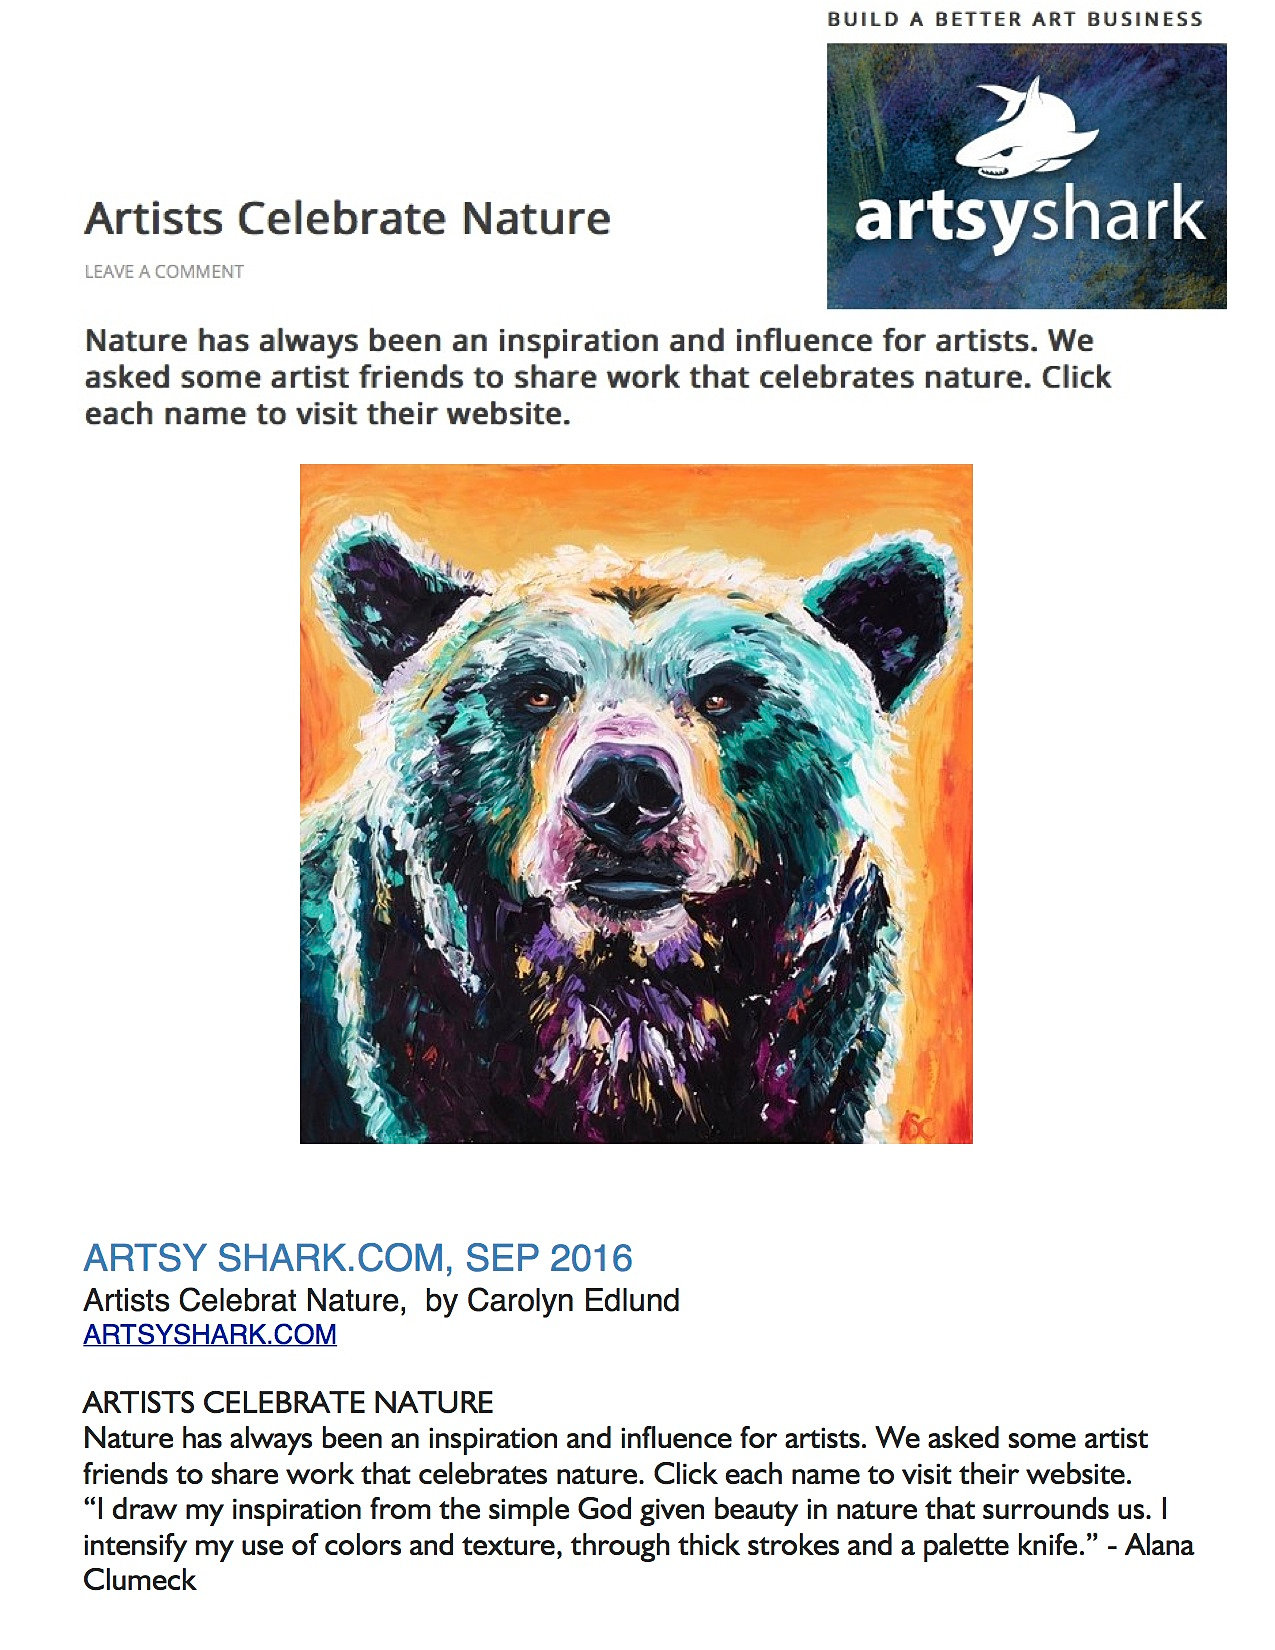 alana clumeck fine art santa barbara equine artist artsy shark com artsy shark com sep 2016 artists celebrat nature by carolyn edlund artsyshark com artists celebrate nature nature has always been an inspiration and